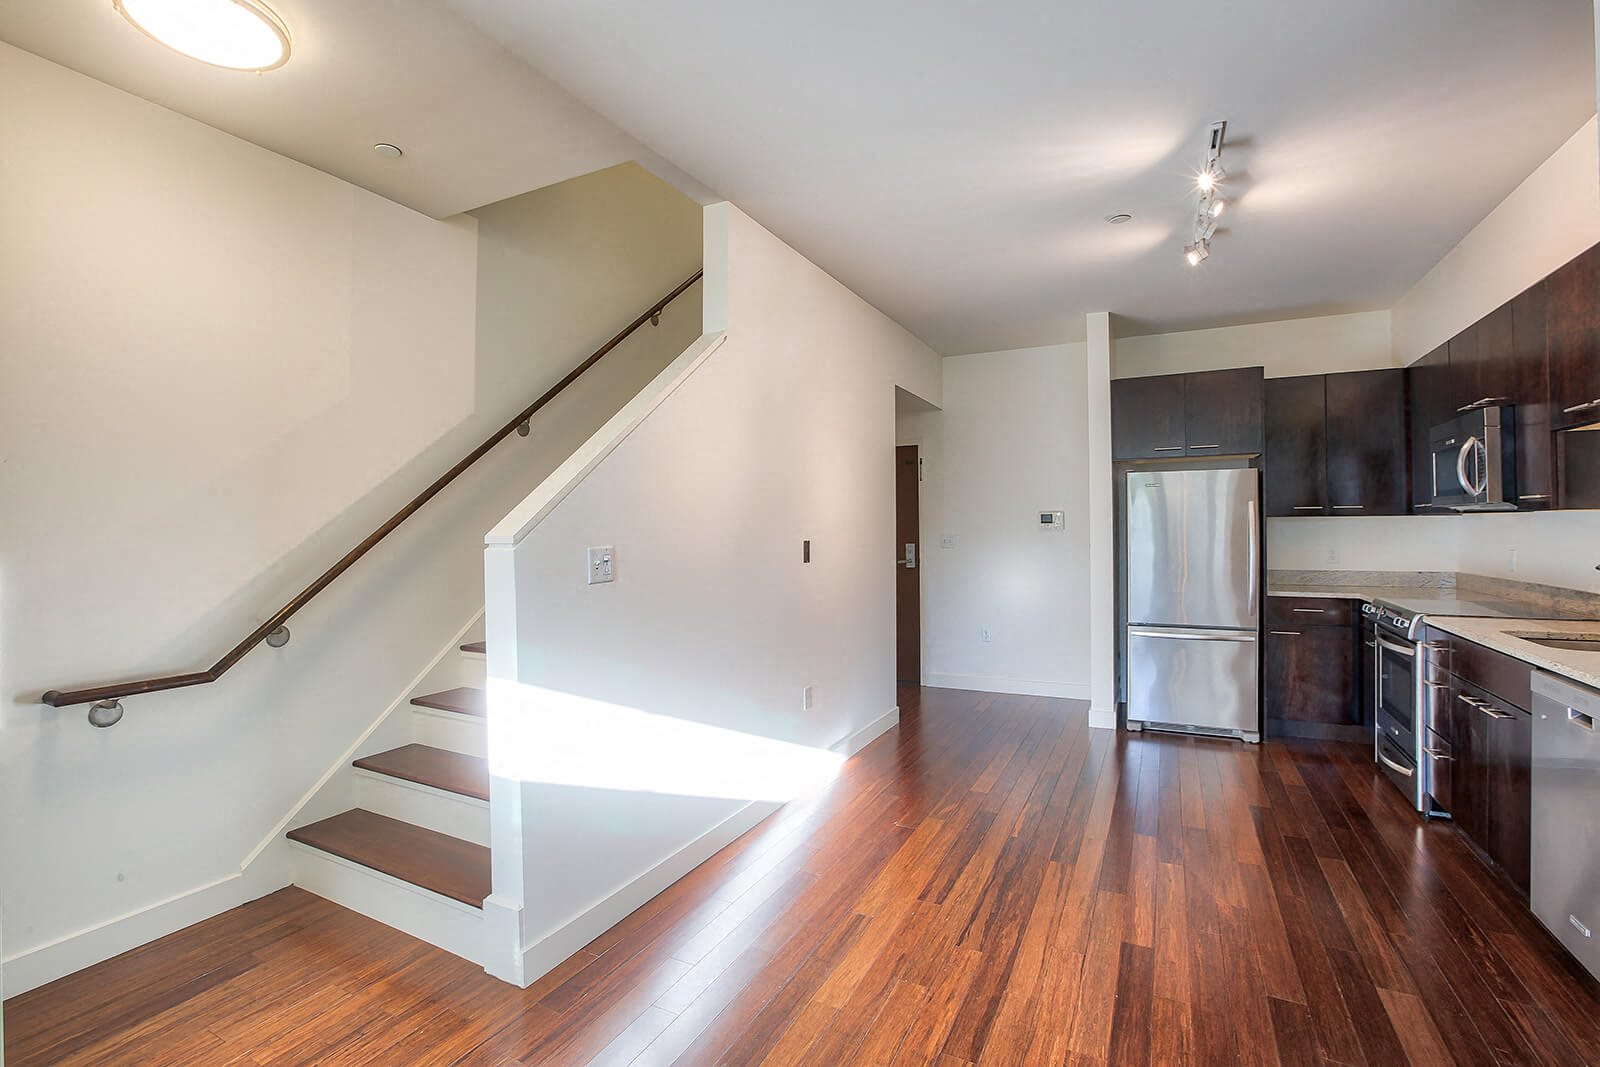 Three Bedroom Townhome with Two Levels at Windsor at Maxwells Green, Massachusetts, 02144